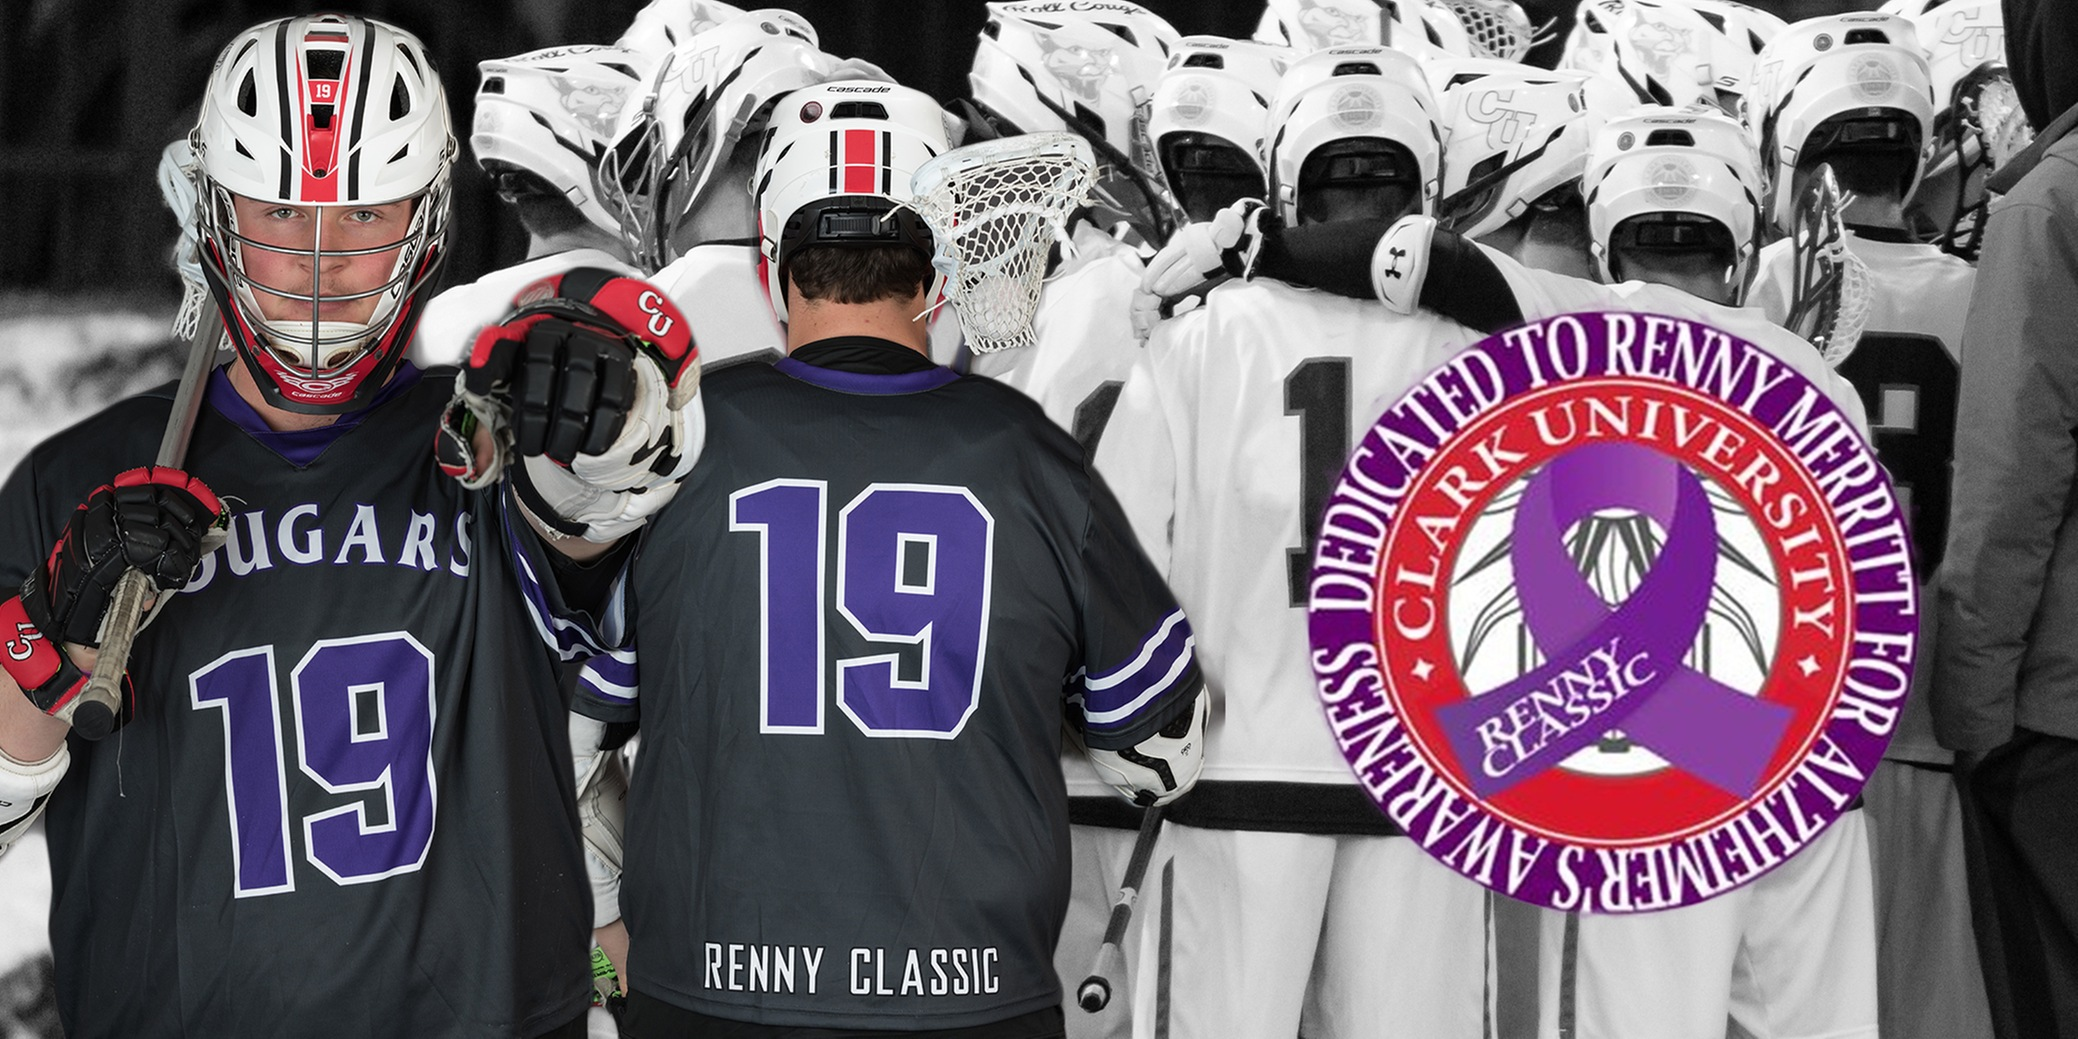 Men's Lacrosse to Host Fourth Annual Renny Classic on March 30th